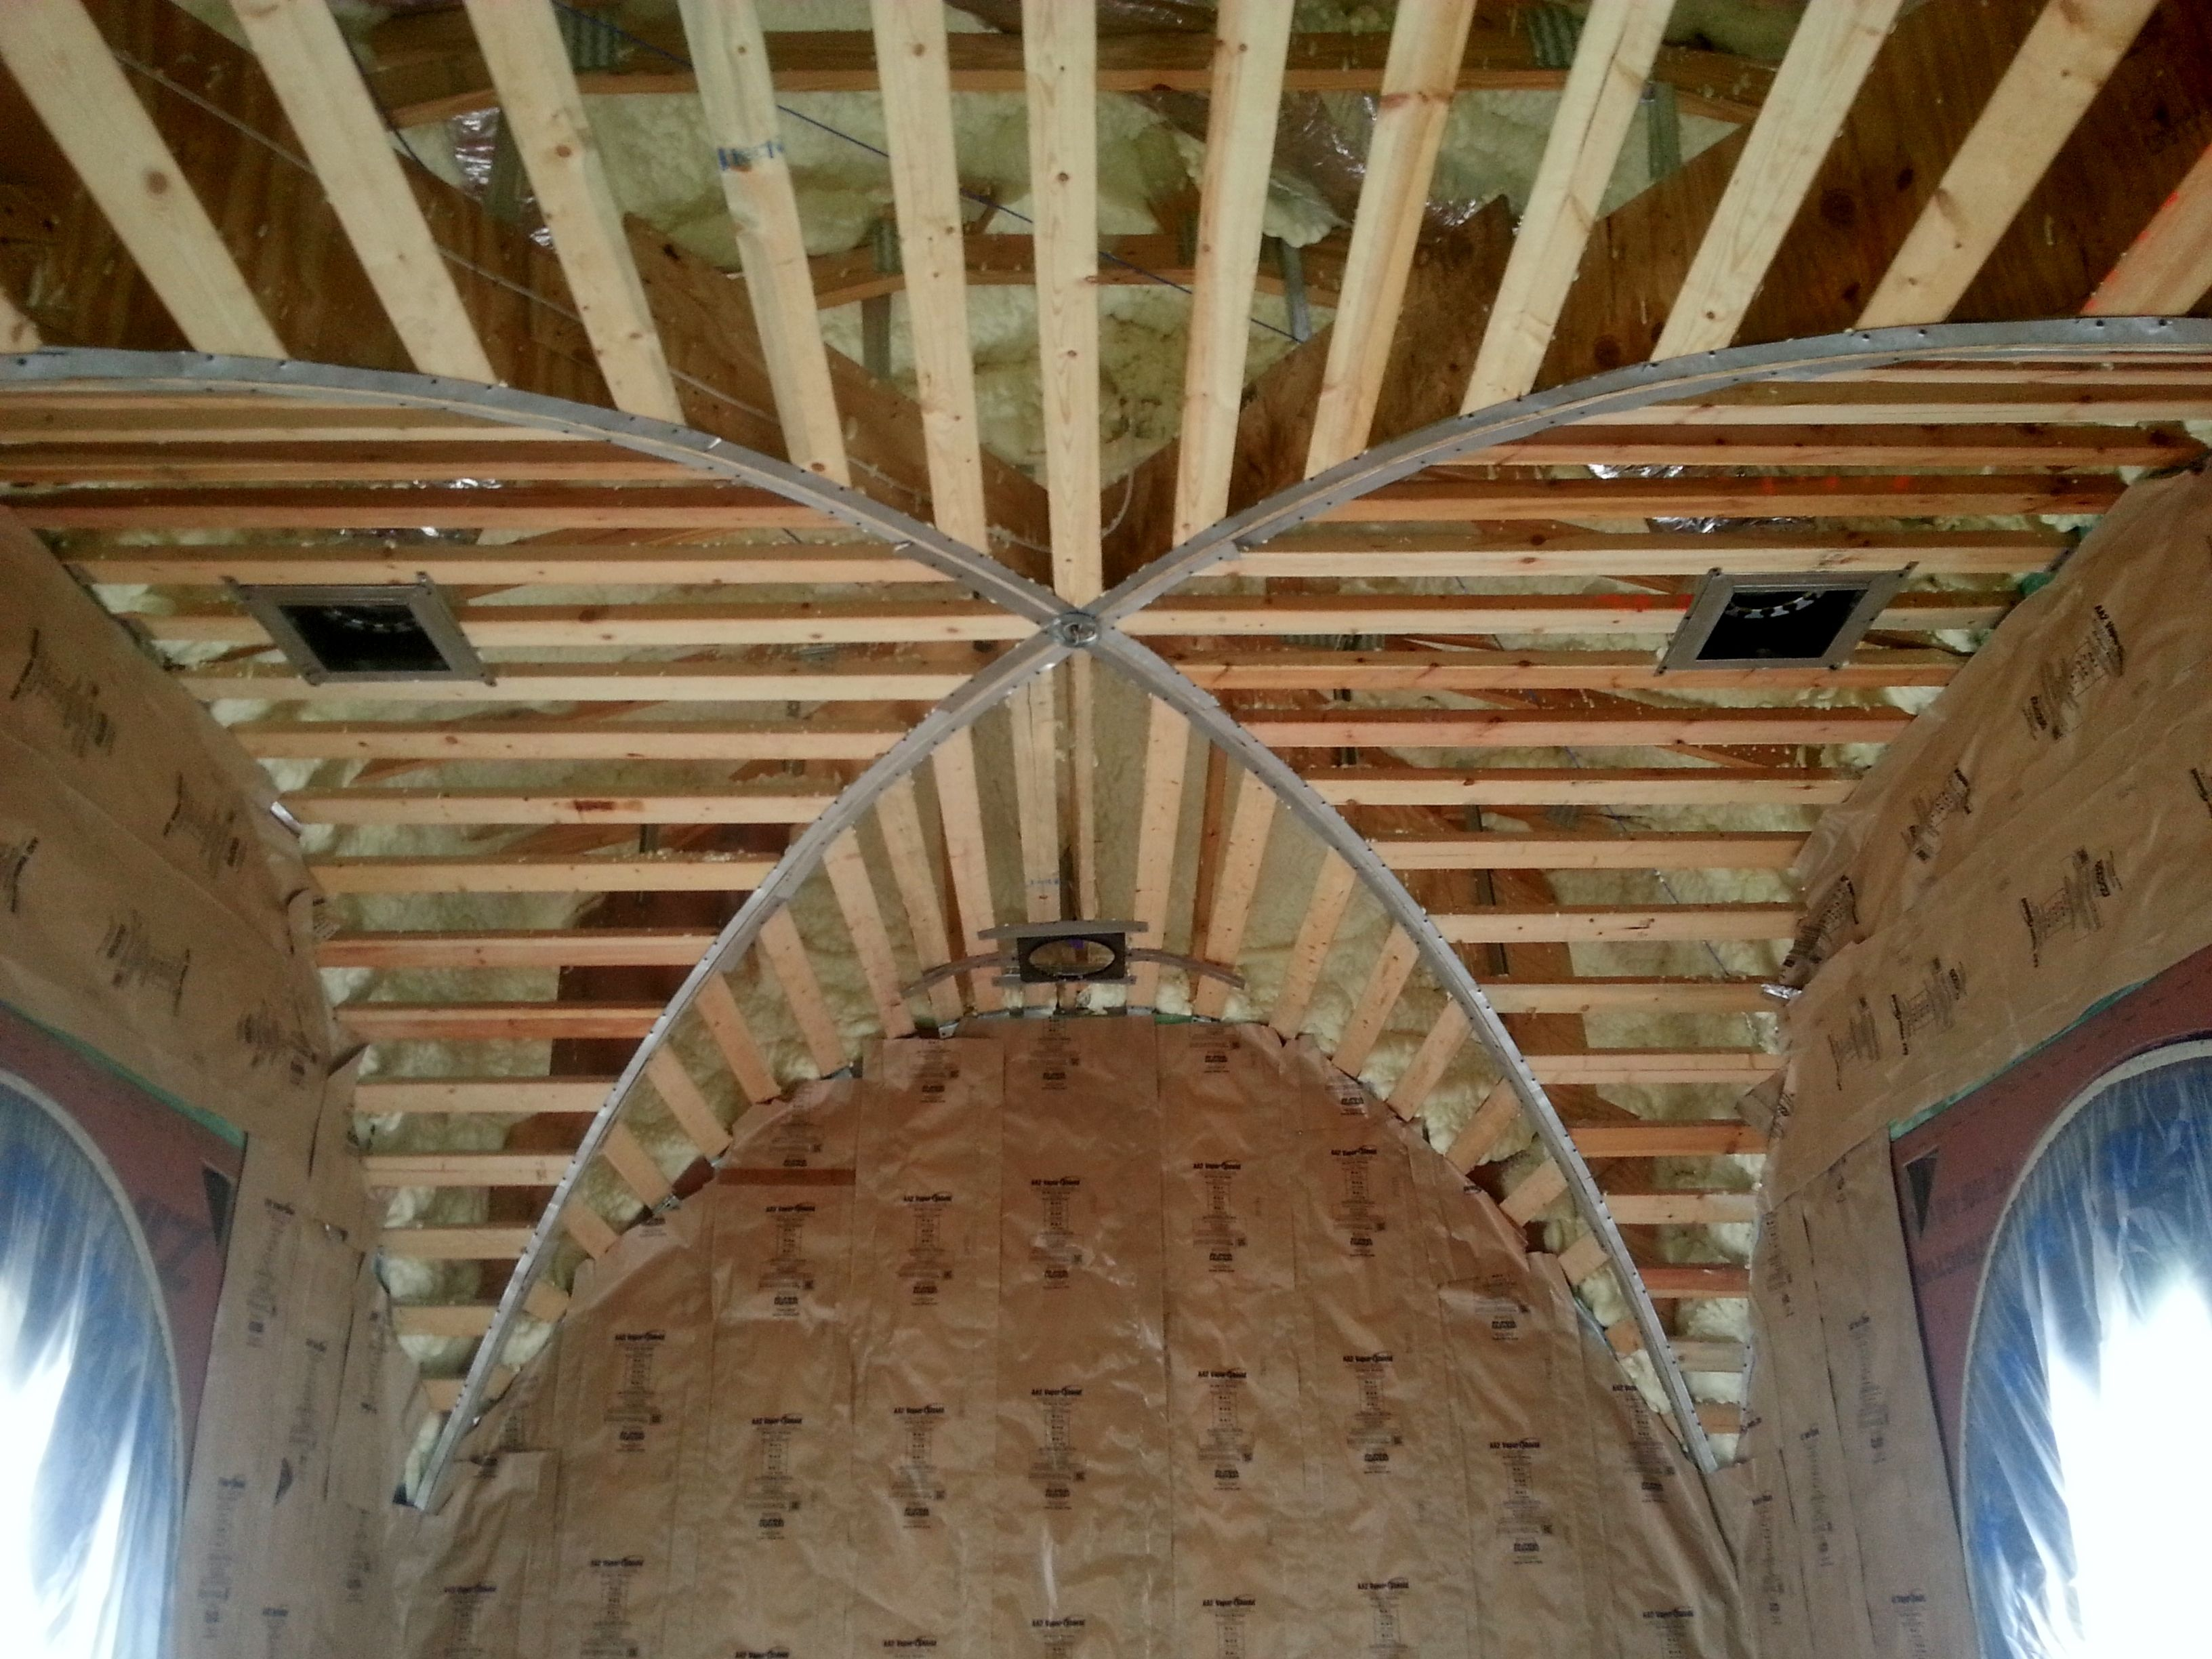 Groin Vault Ceiling Vaulted Ceiling Ceiling Design Vaulting